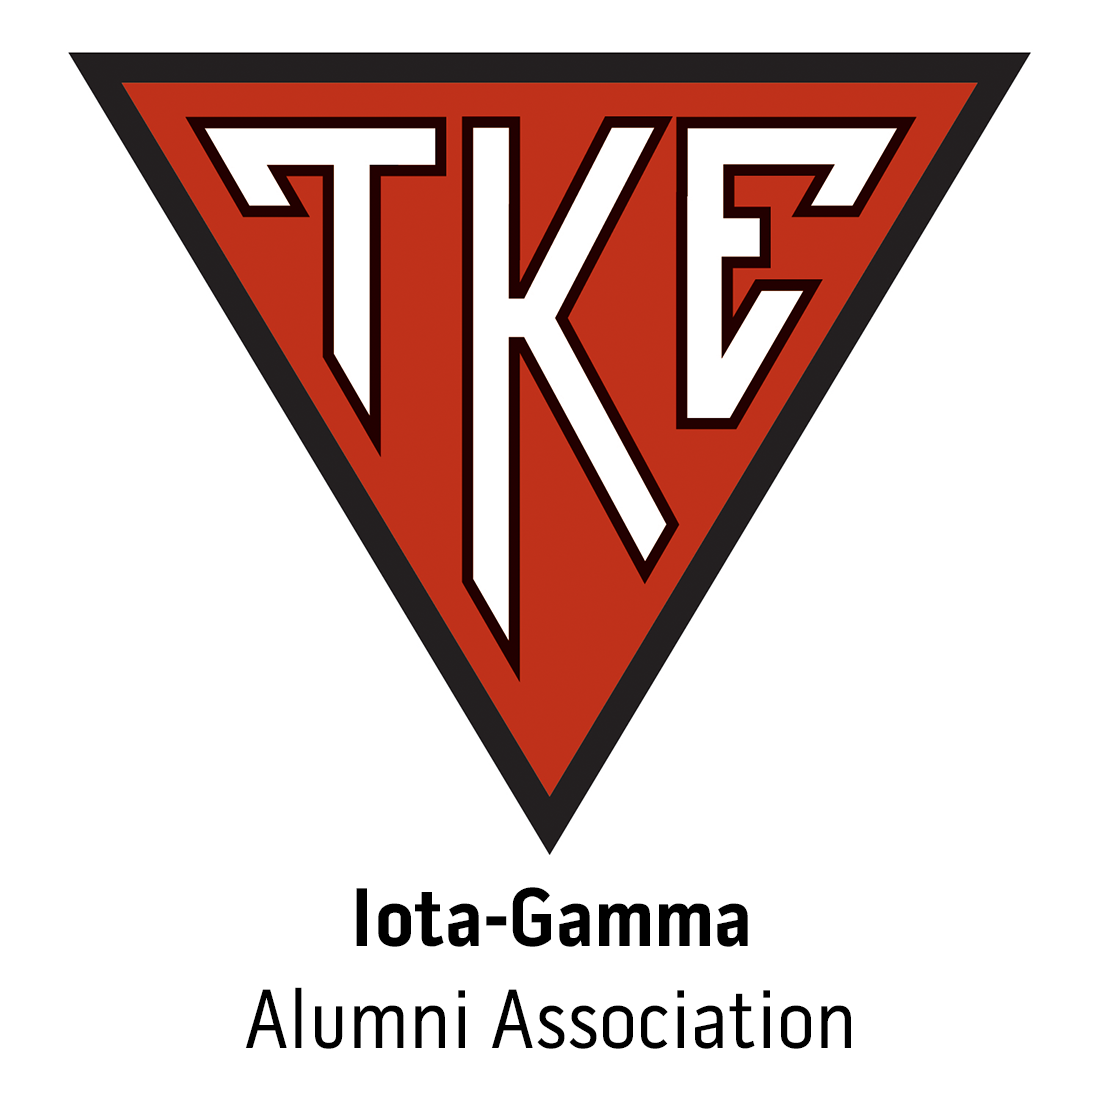 Iota-Gamma Alumni Association Alumni at Truman State University